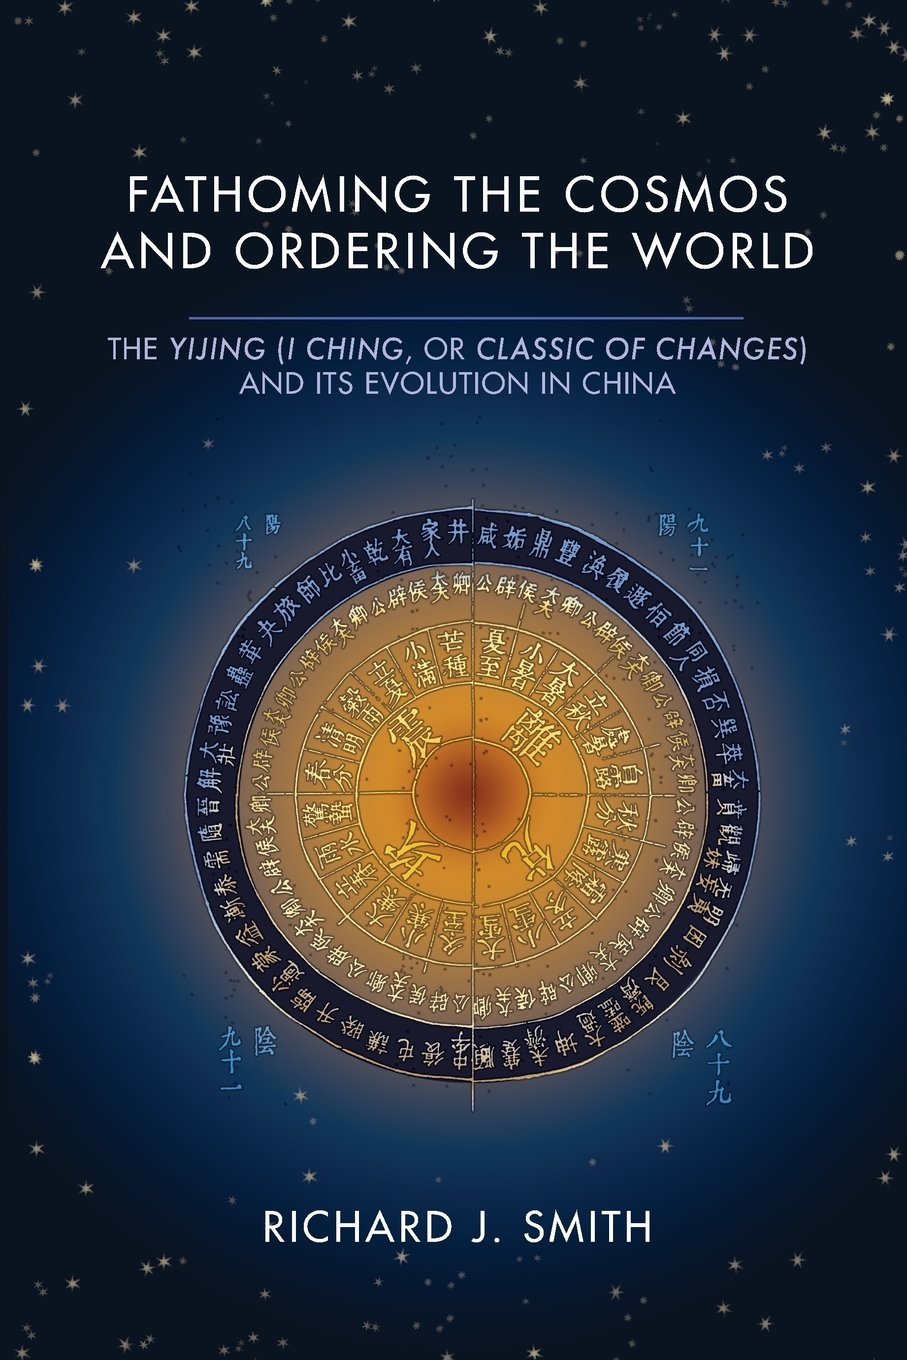 Fathoming the Cosmos and Ordering the World: The Yijing (I Ching, or Classic of Changes) and Its Evolution in China (Richard Lectures)